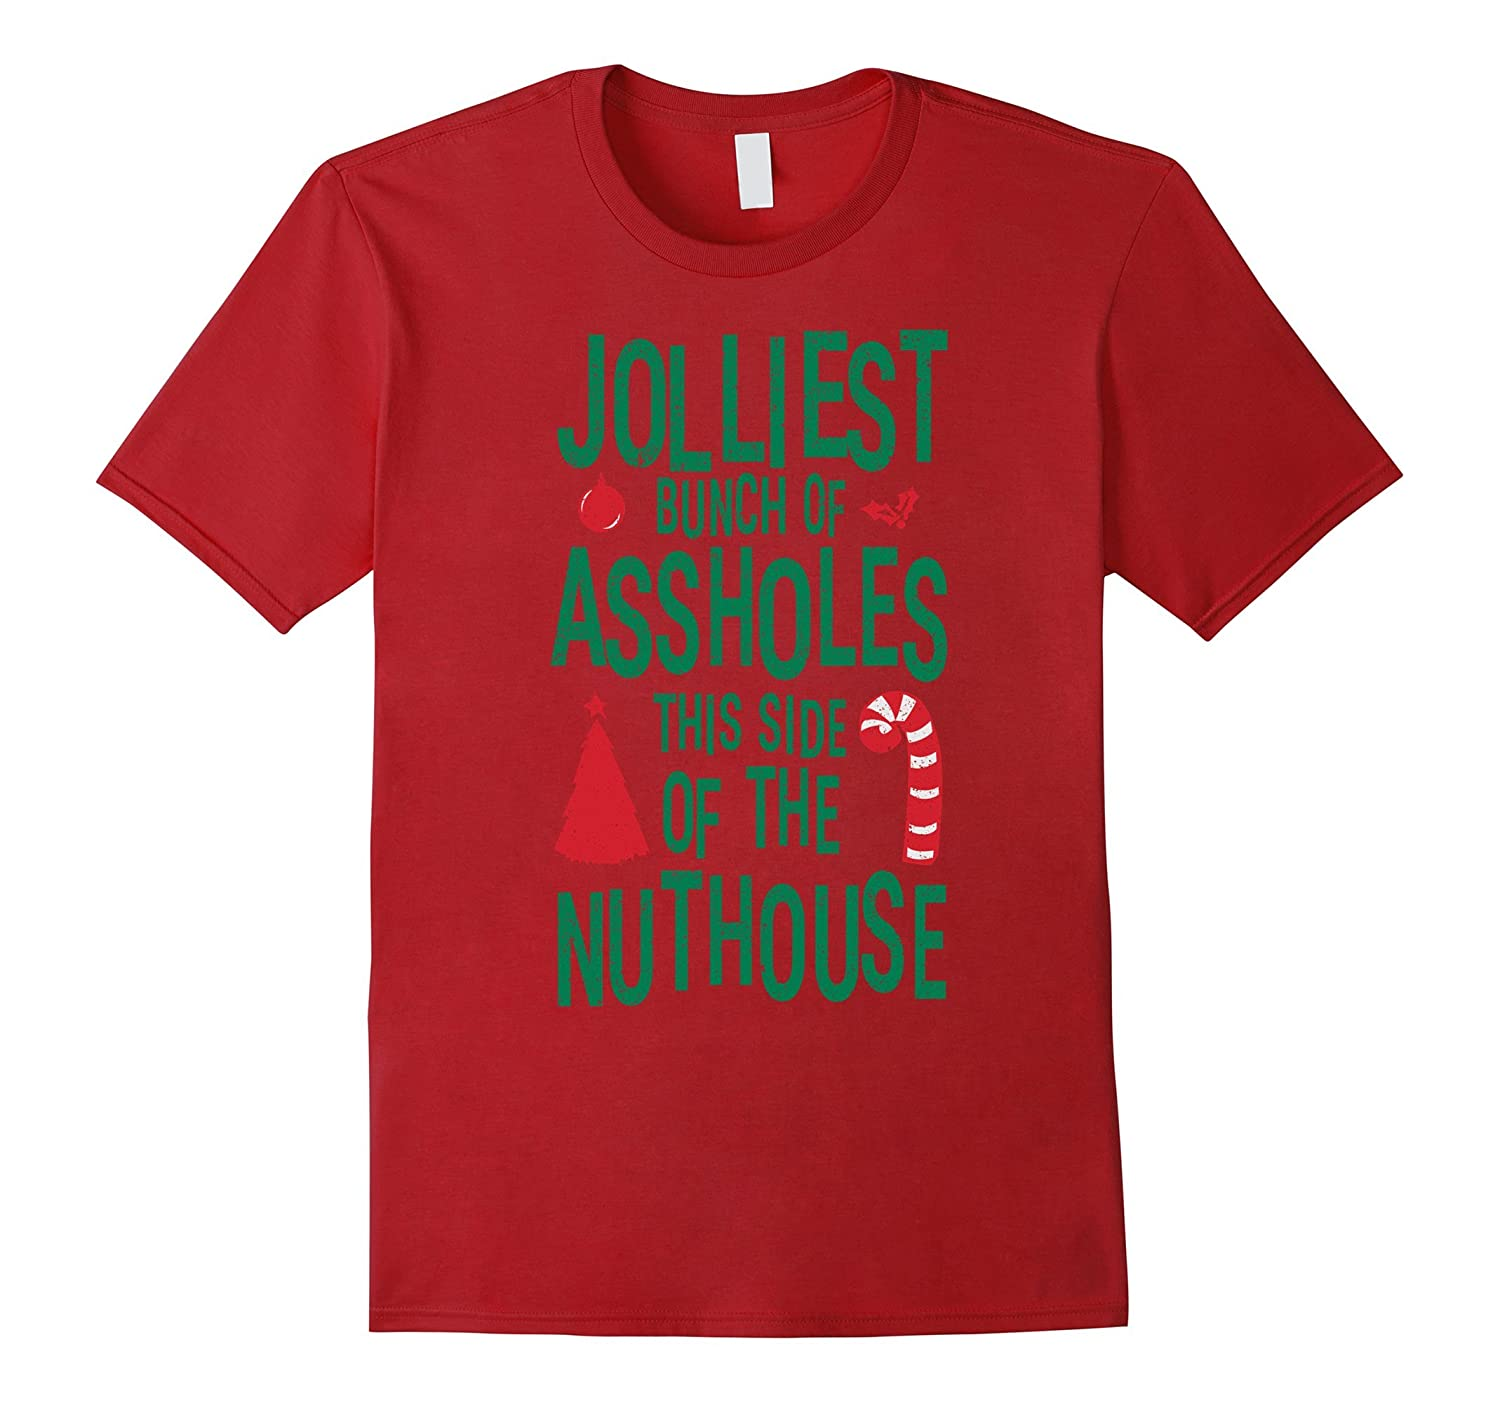 Jolliest Bunch of Assholes the side the Nutthouse Tshirt